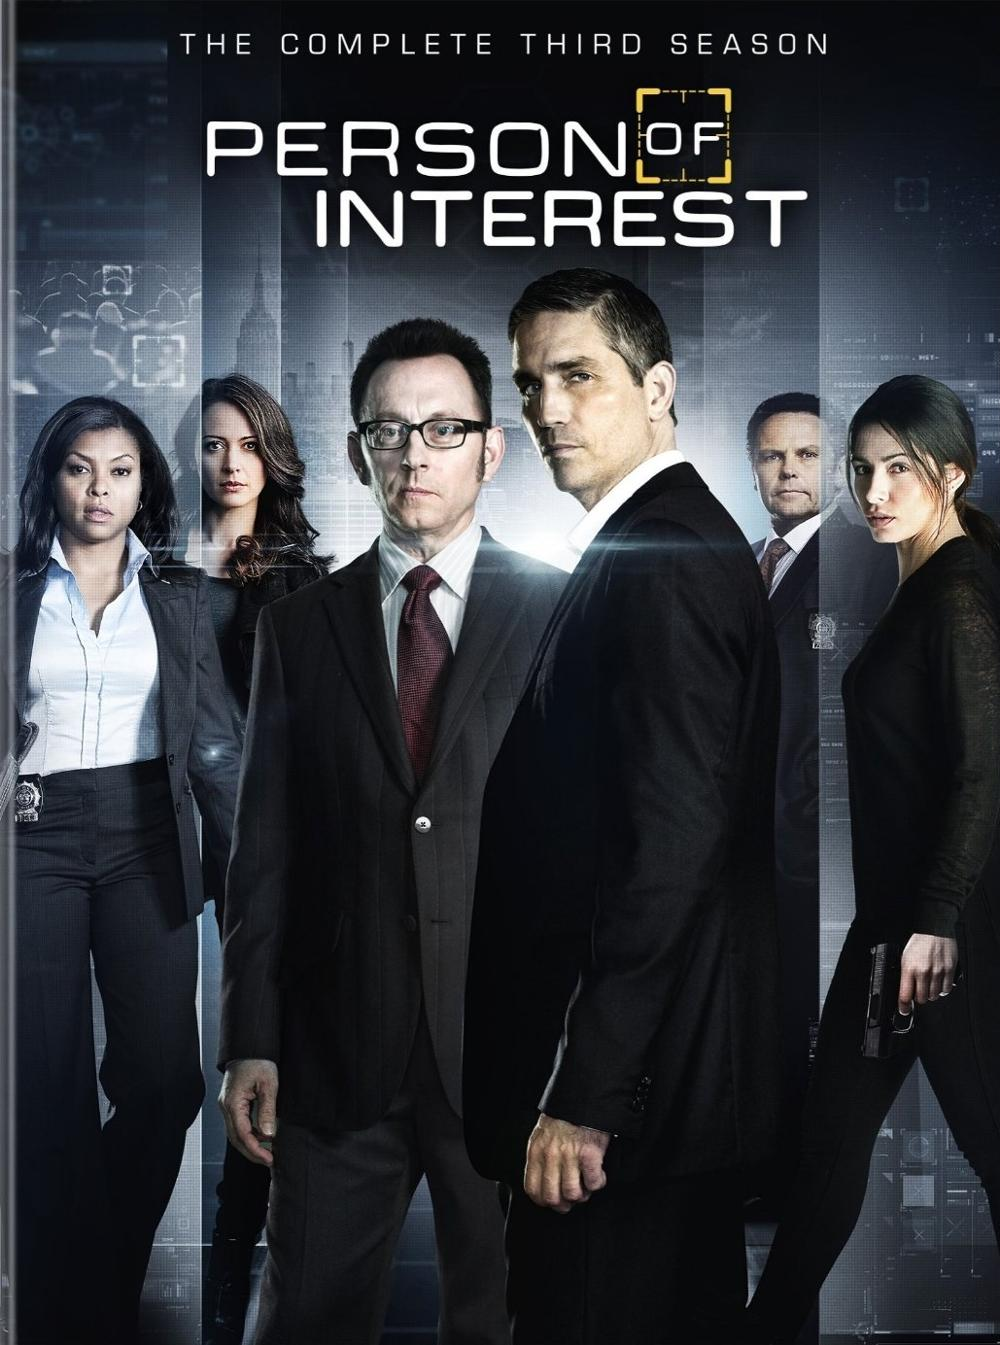 http://tvstock.net/sites/default/files/poster-person-of-interest-season-3.jpg